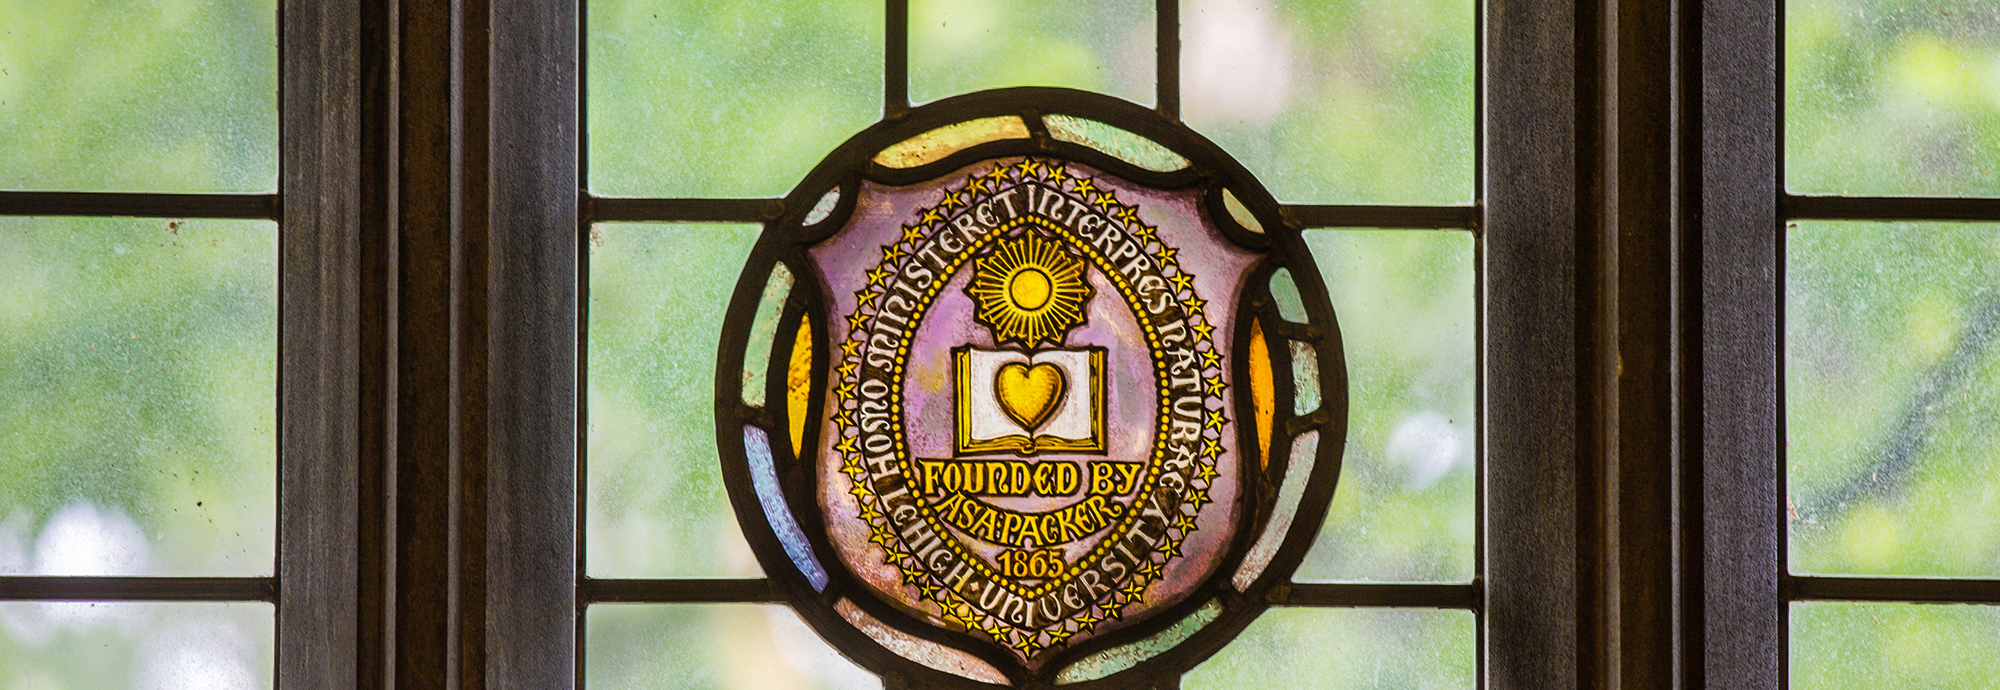 Stained Glass window detail with Lehigh Seal